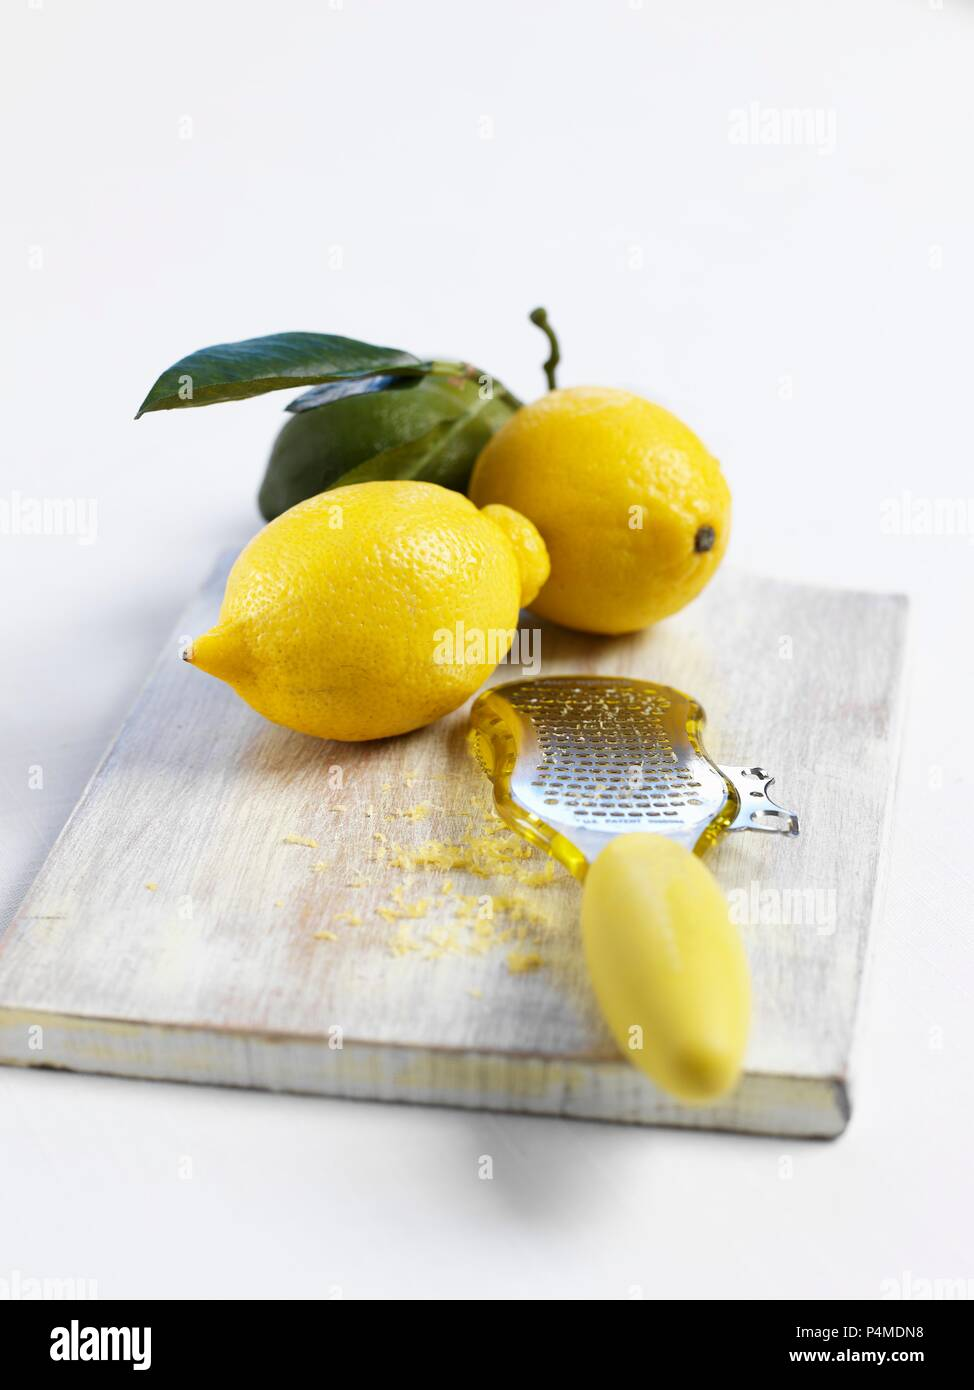 Lemons and a grater with lemon zest - Stock Image